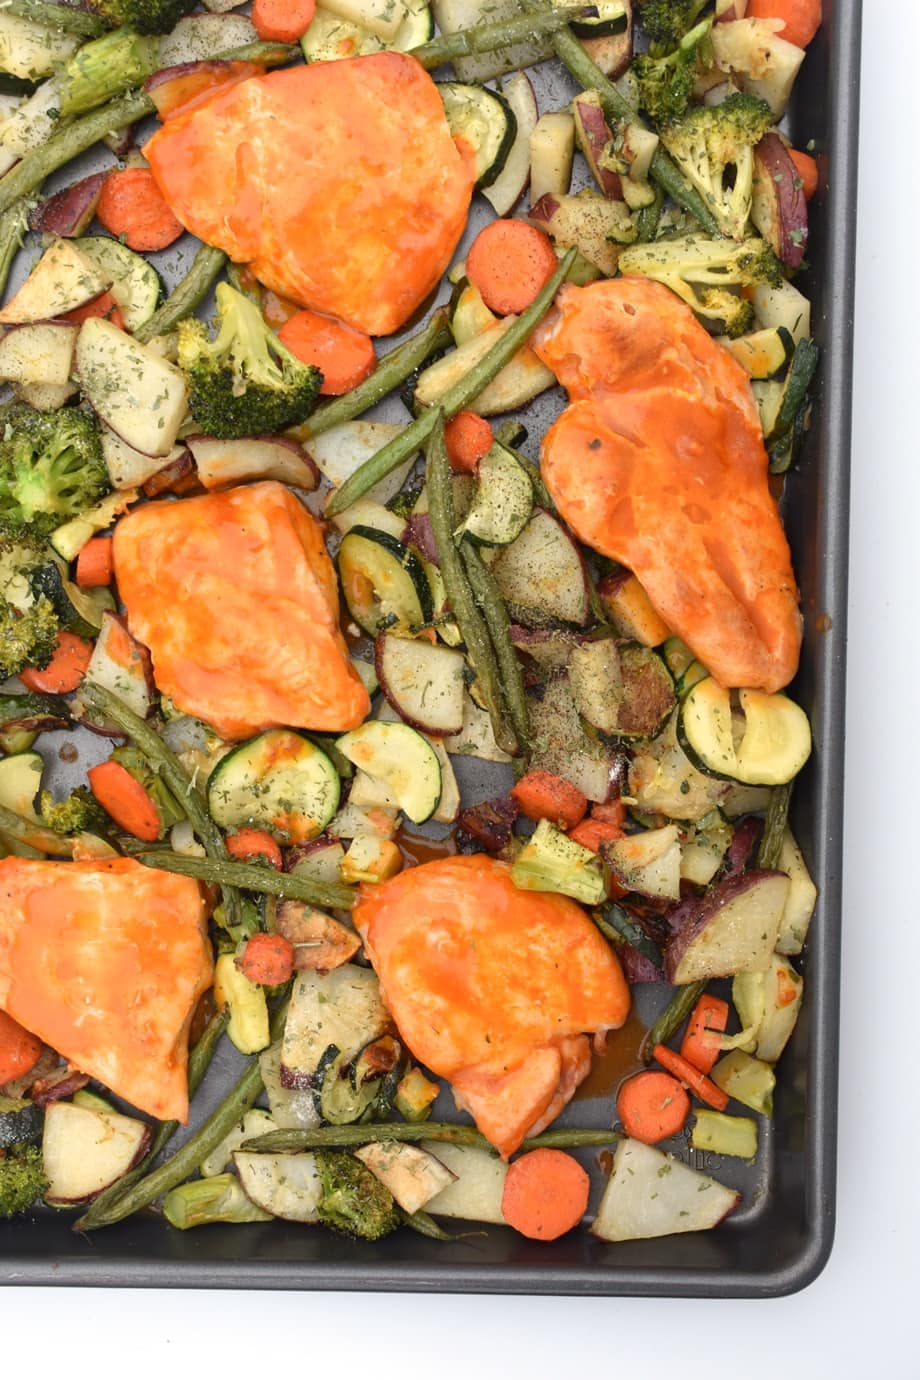 Sheet Pan Buffalo Chick and Roasted Ranch Vegetables